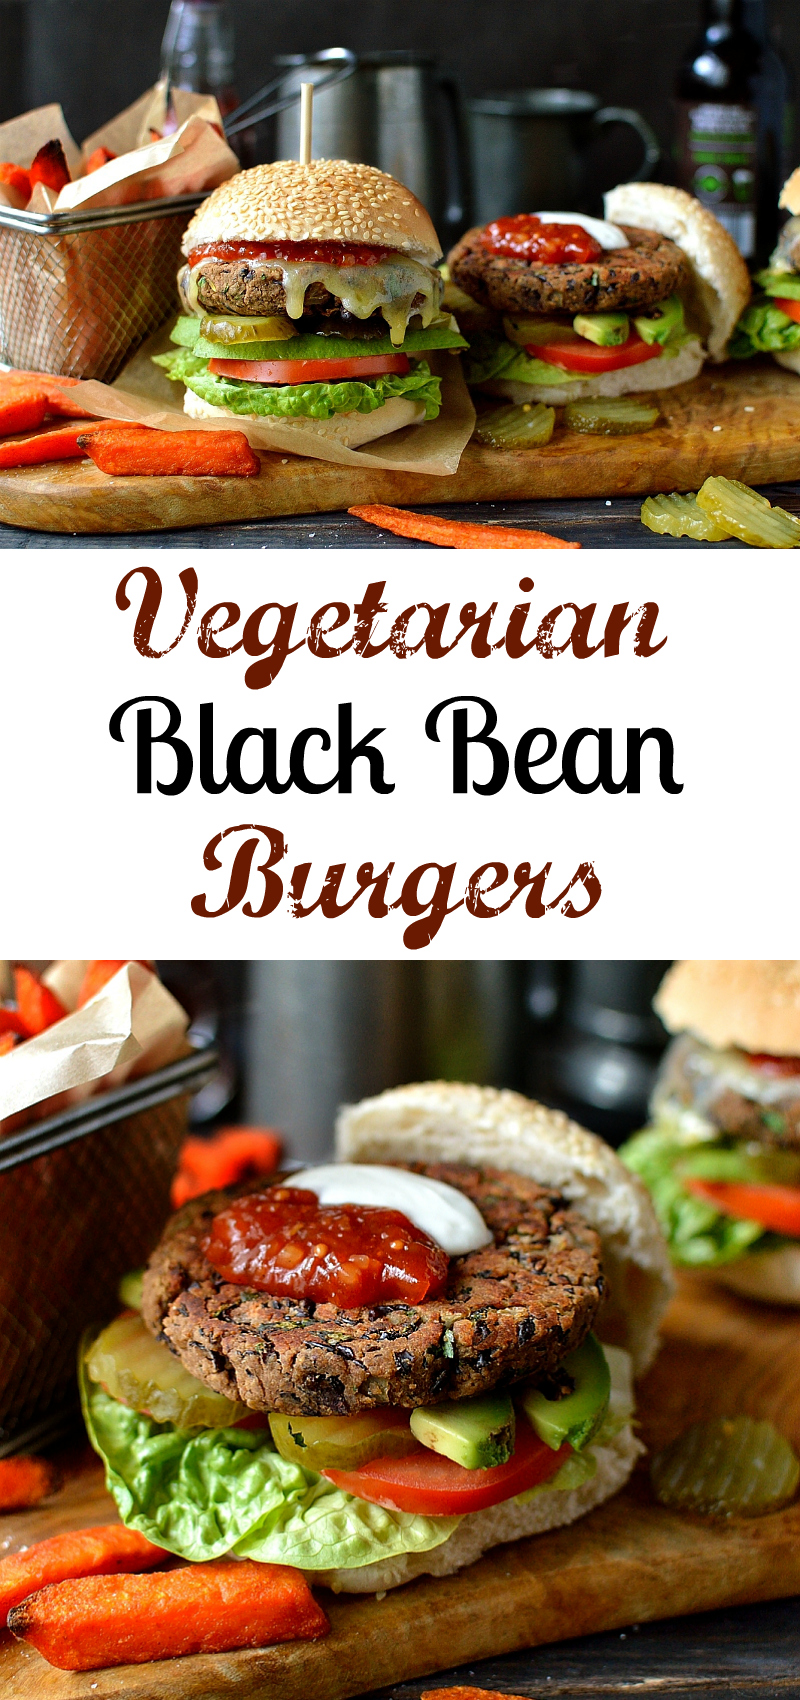 Delicious vegetarian black bean burgers that don't fall apart when cooked